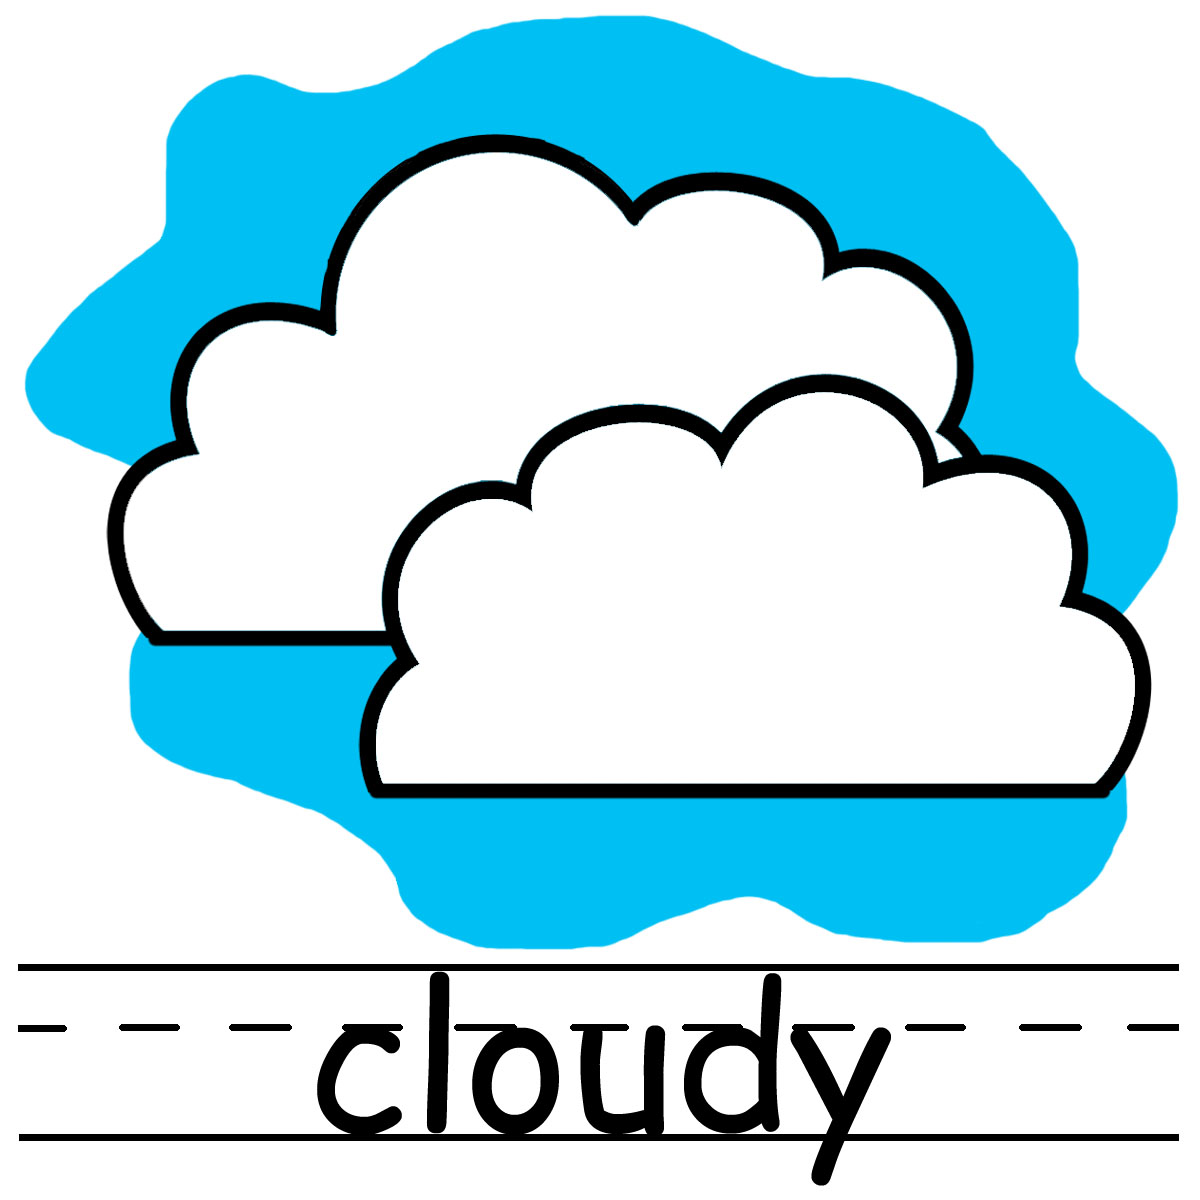 Clouds clipart cloudy weather Download Weather Free Weather #3819